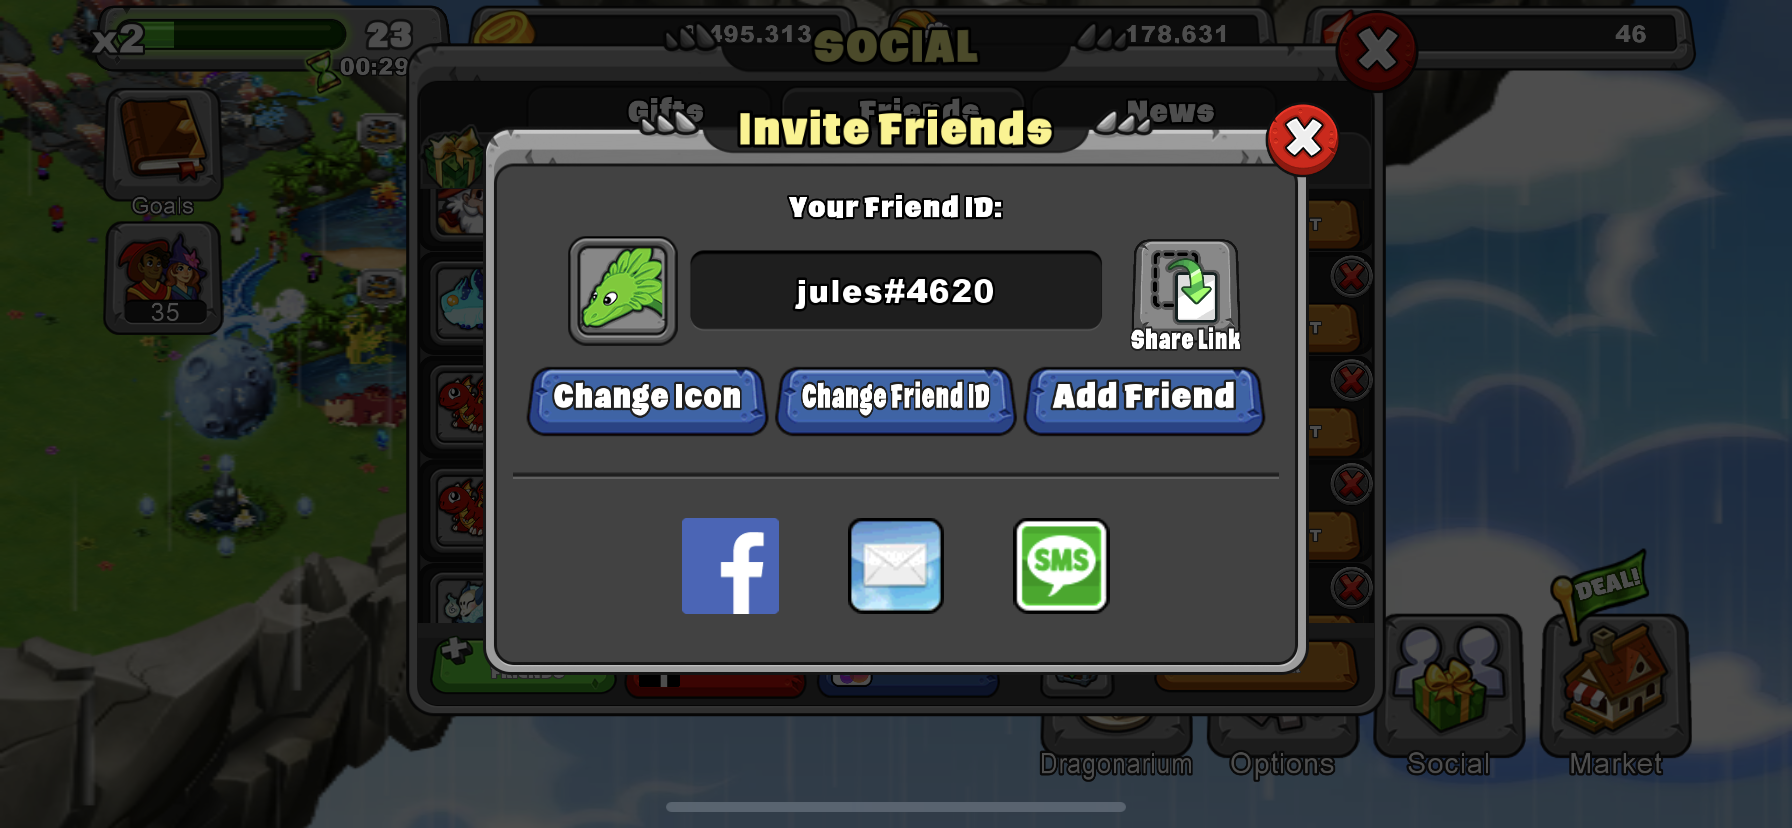 Hi, I changed my ID again lol I gift daily and I have a few cool dragons you might want to breed :)